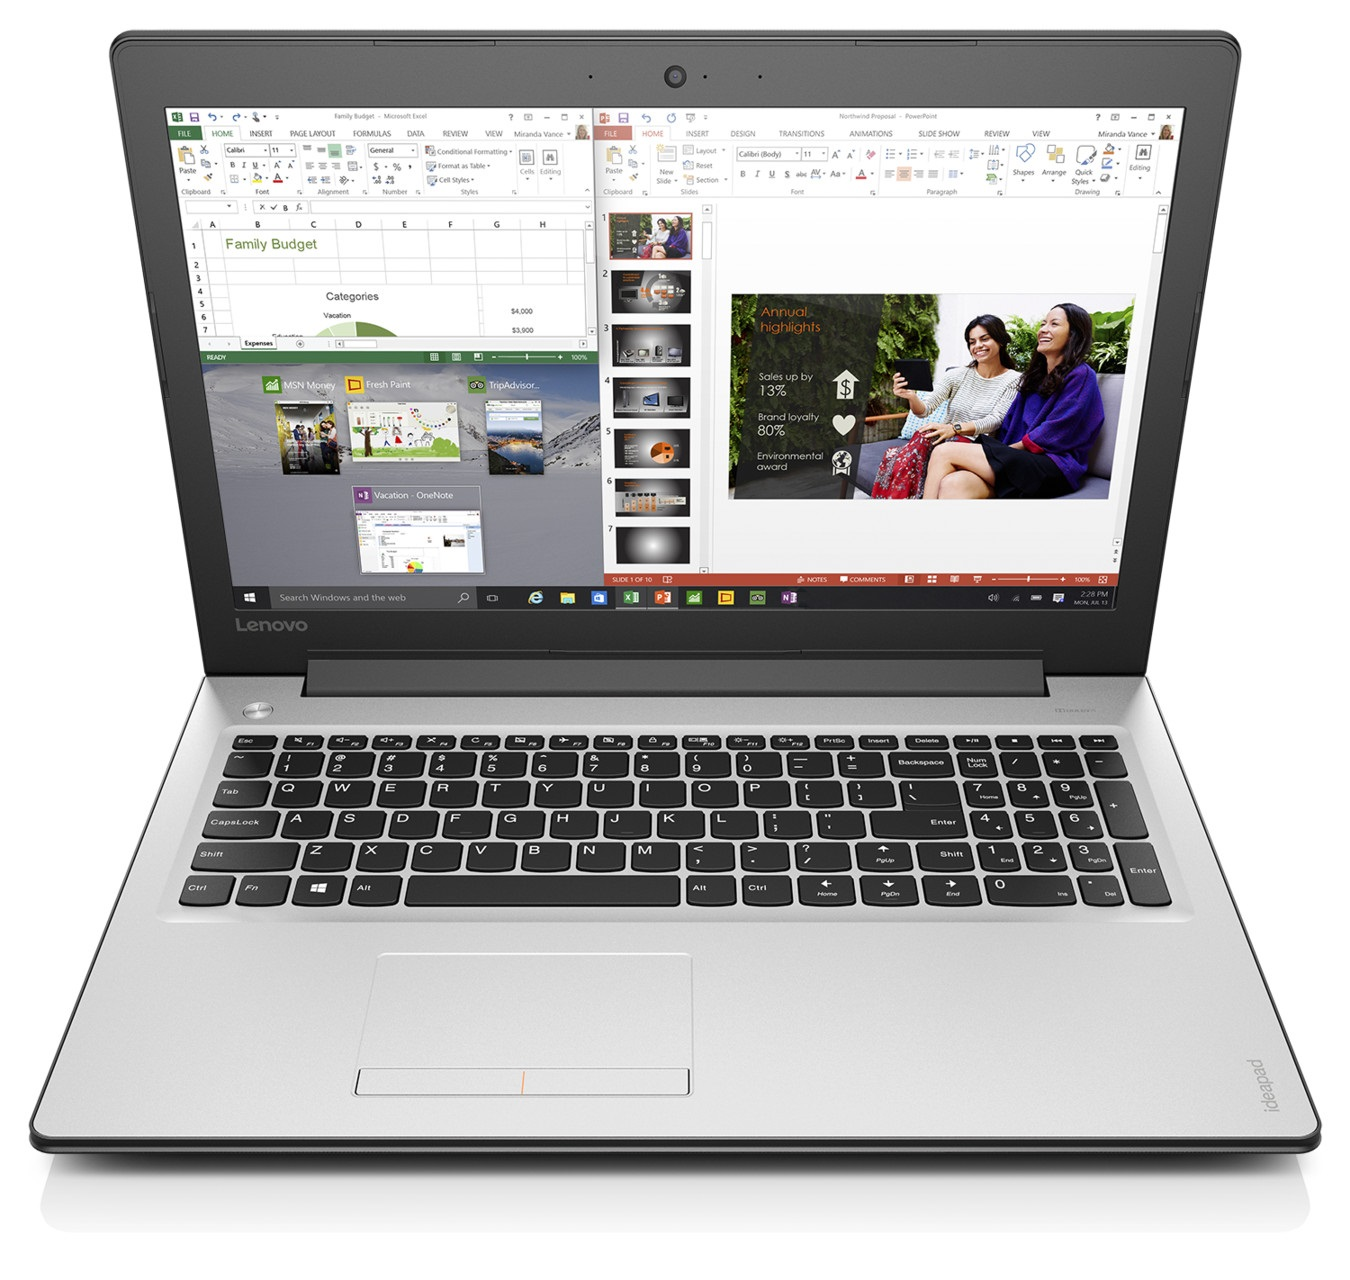 "Lenovo IdeaPad 310-15ISK Core i3-6006U 2,00GHz/6GB/1TB/15,6"" FHD/GeForce 2GB/DVD-RW/WIN10 bílá 80SM01LVCK"